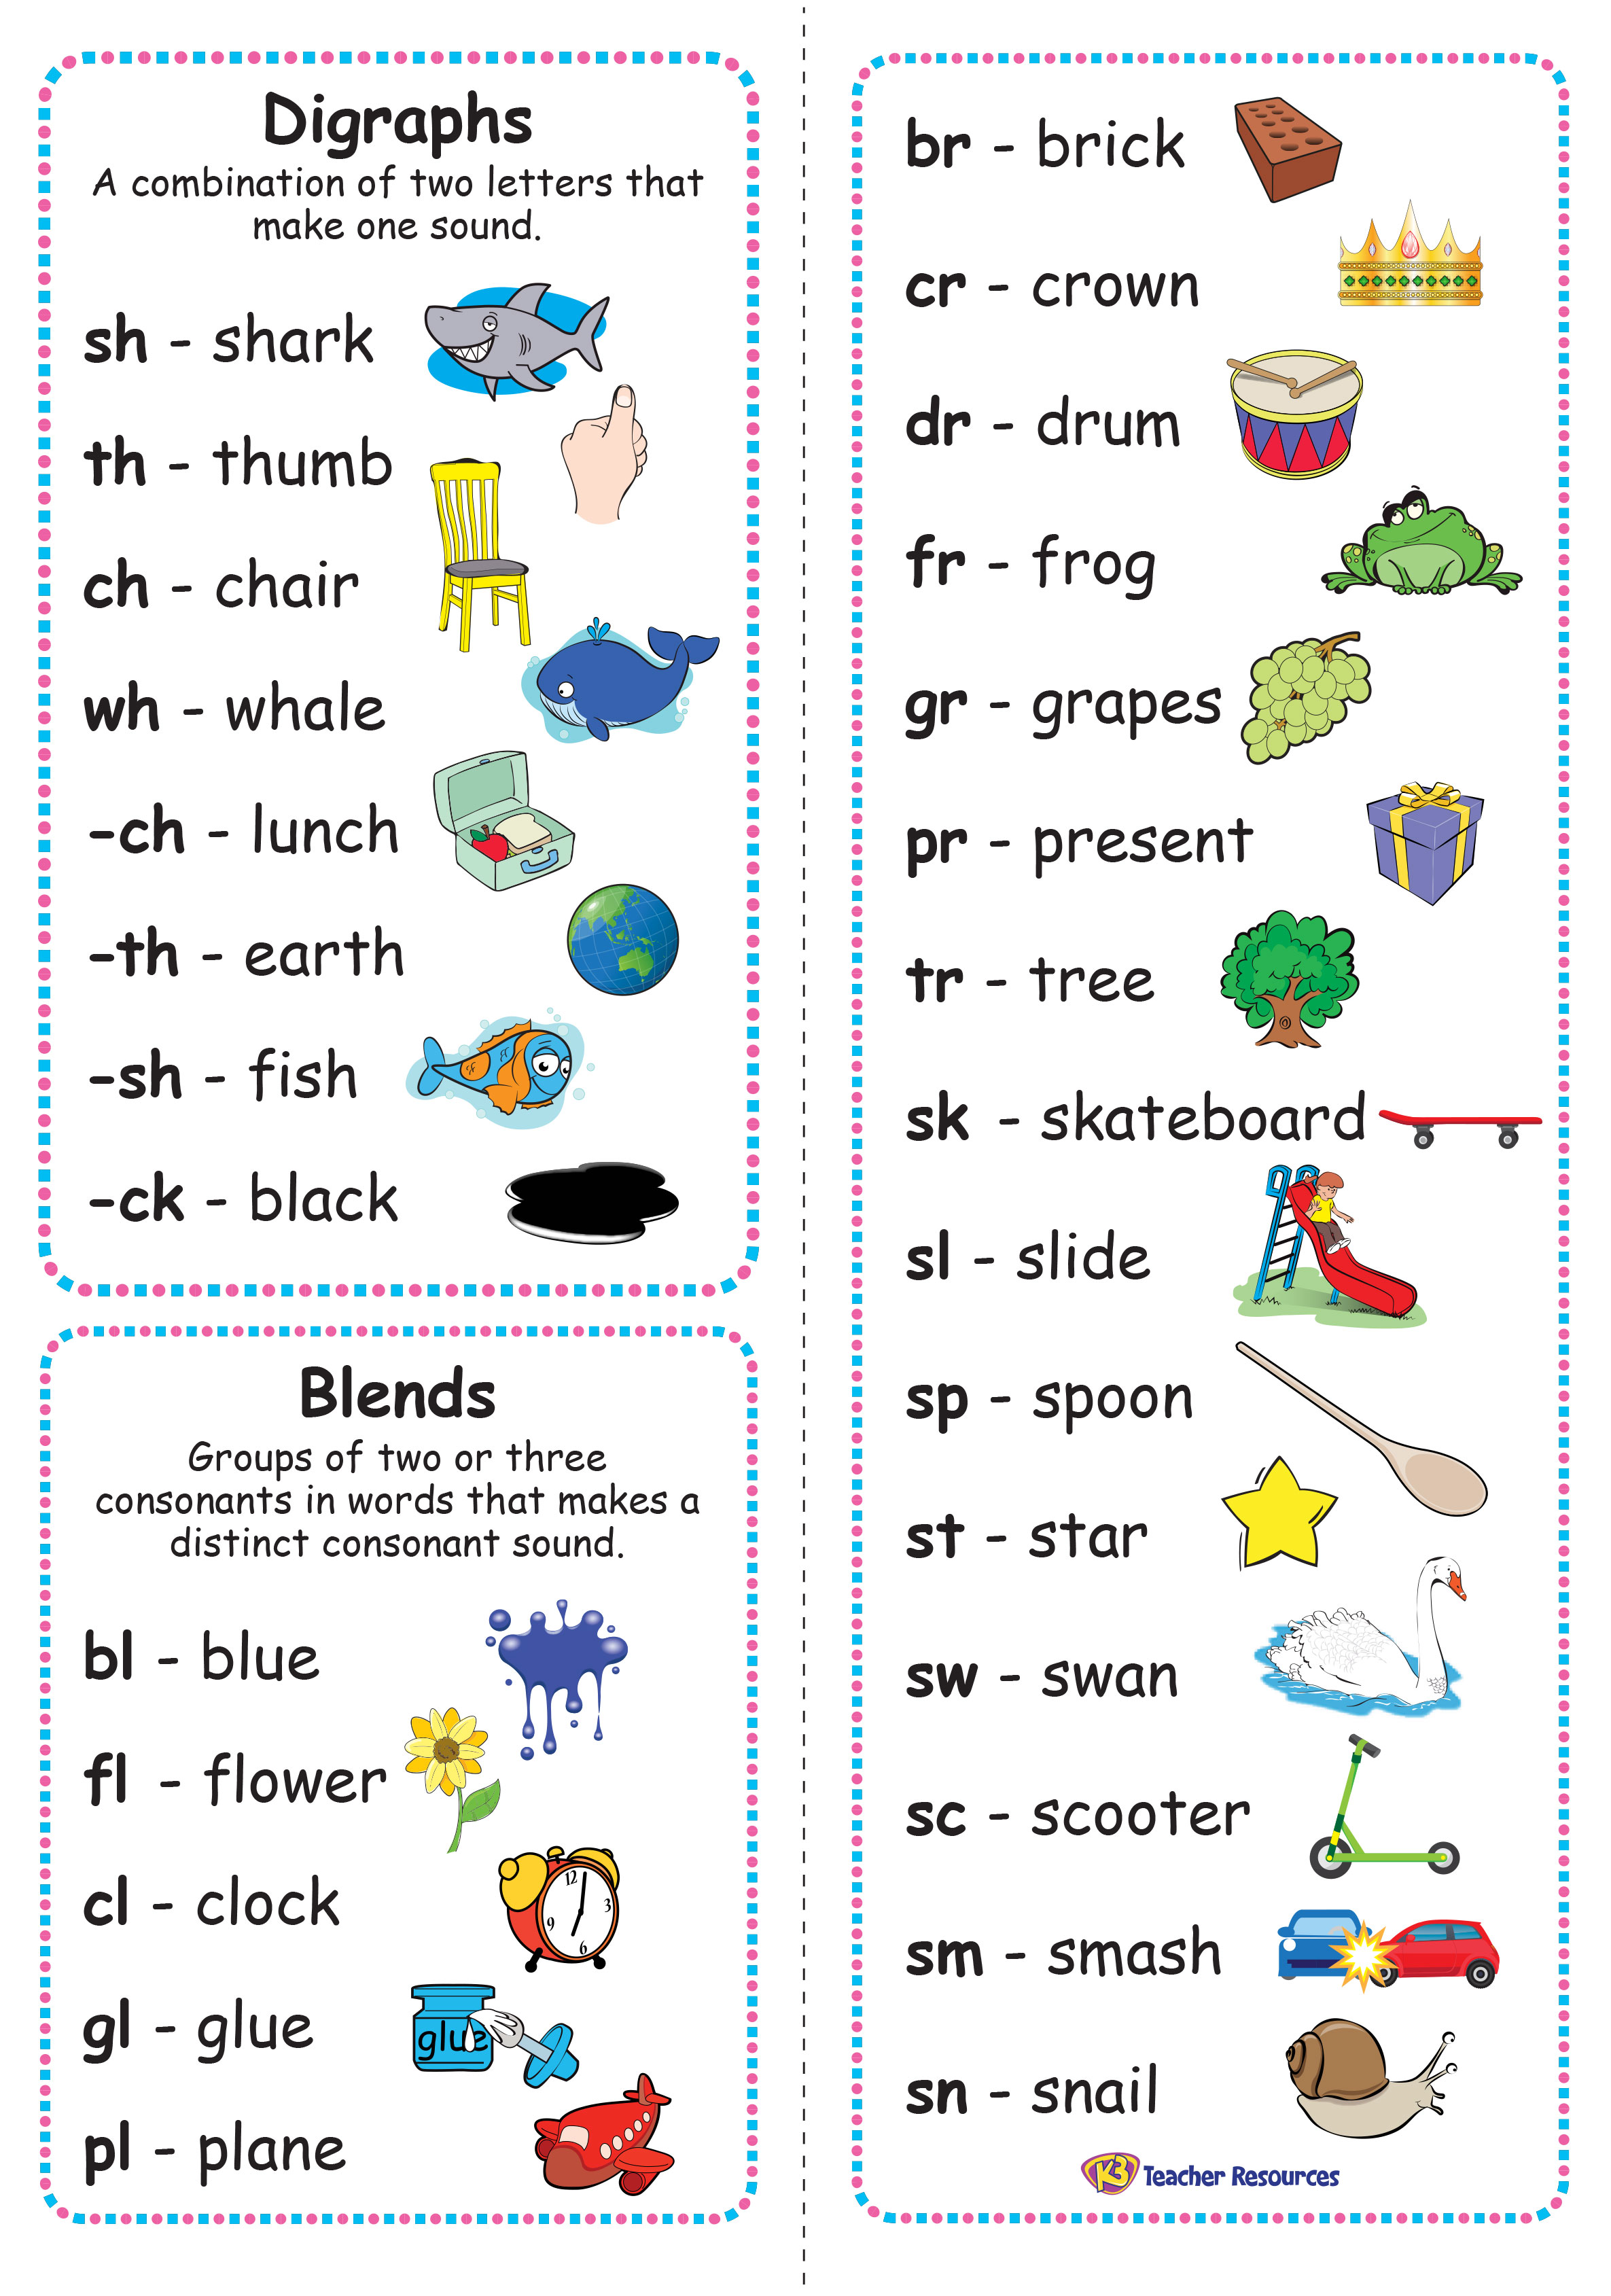 77 Letter F Free Printable Worksheets Printable